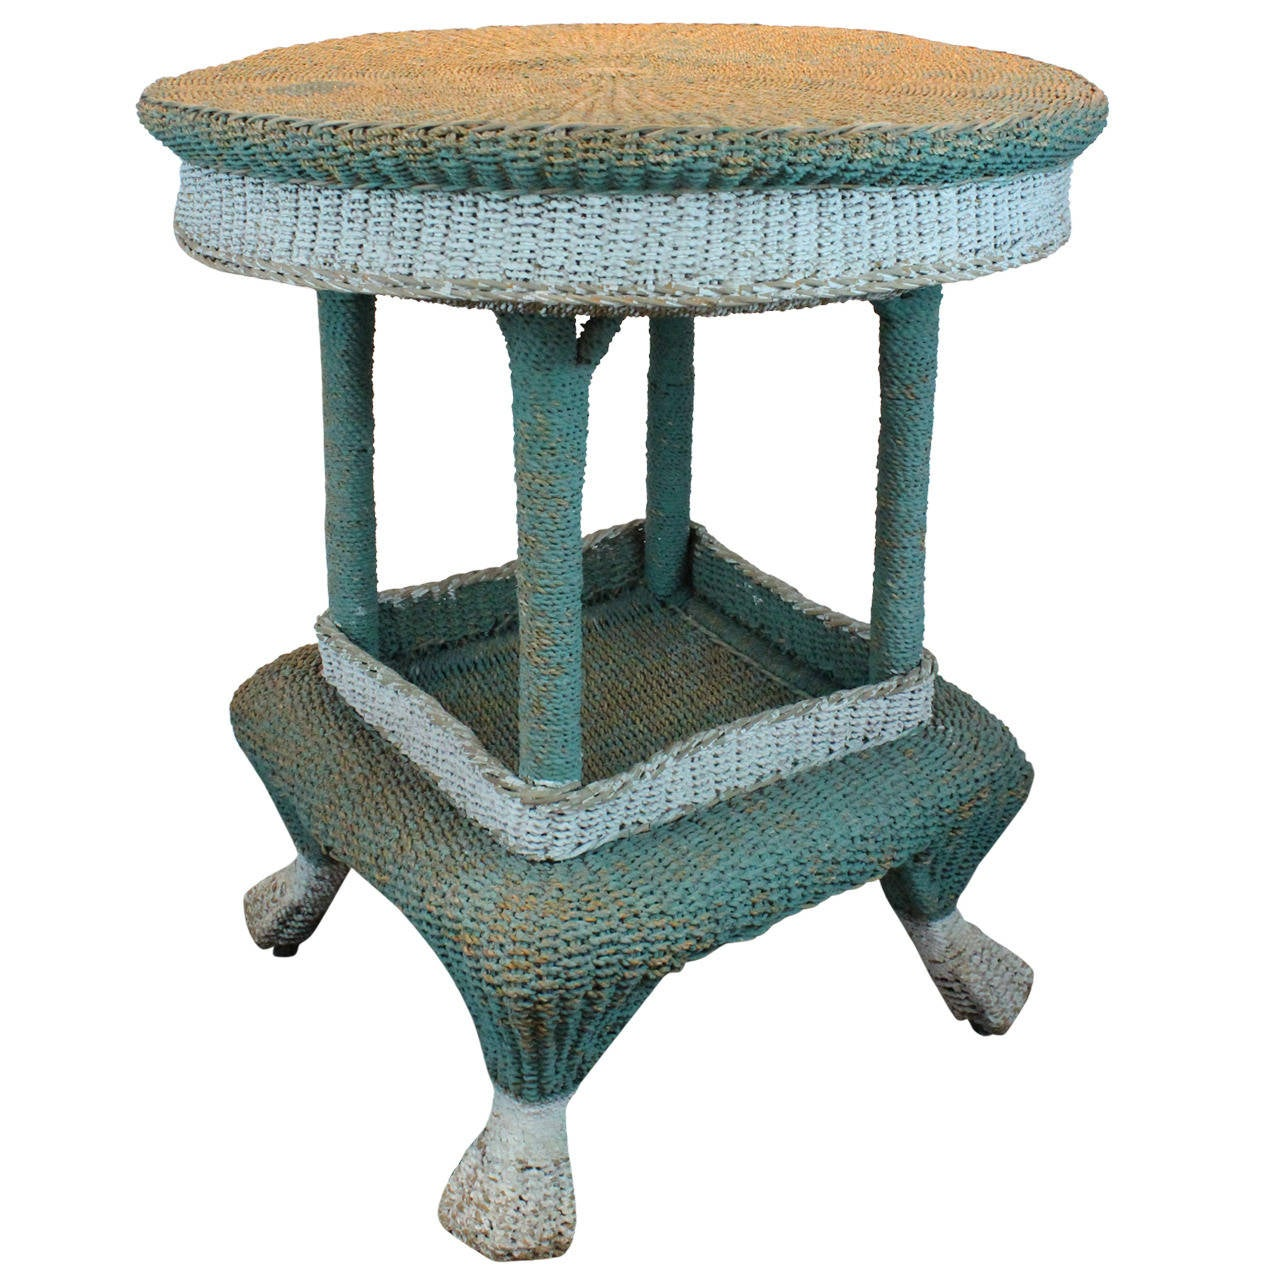 Early 20th Century Woven Seagrass Table At 1stdibs